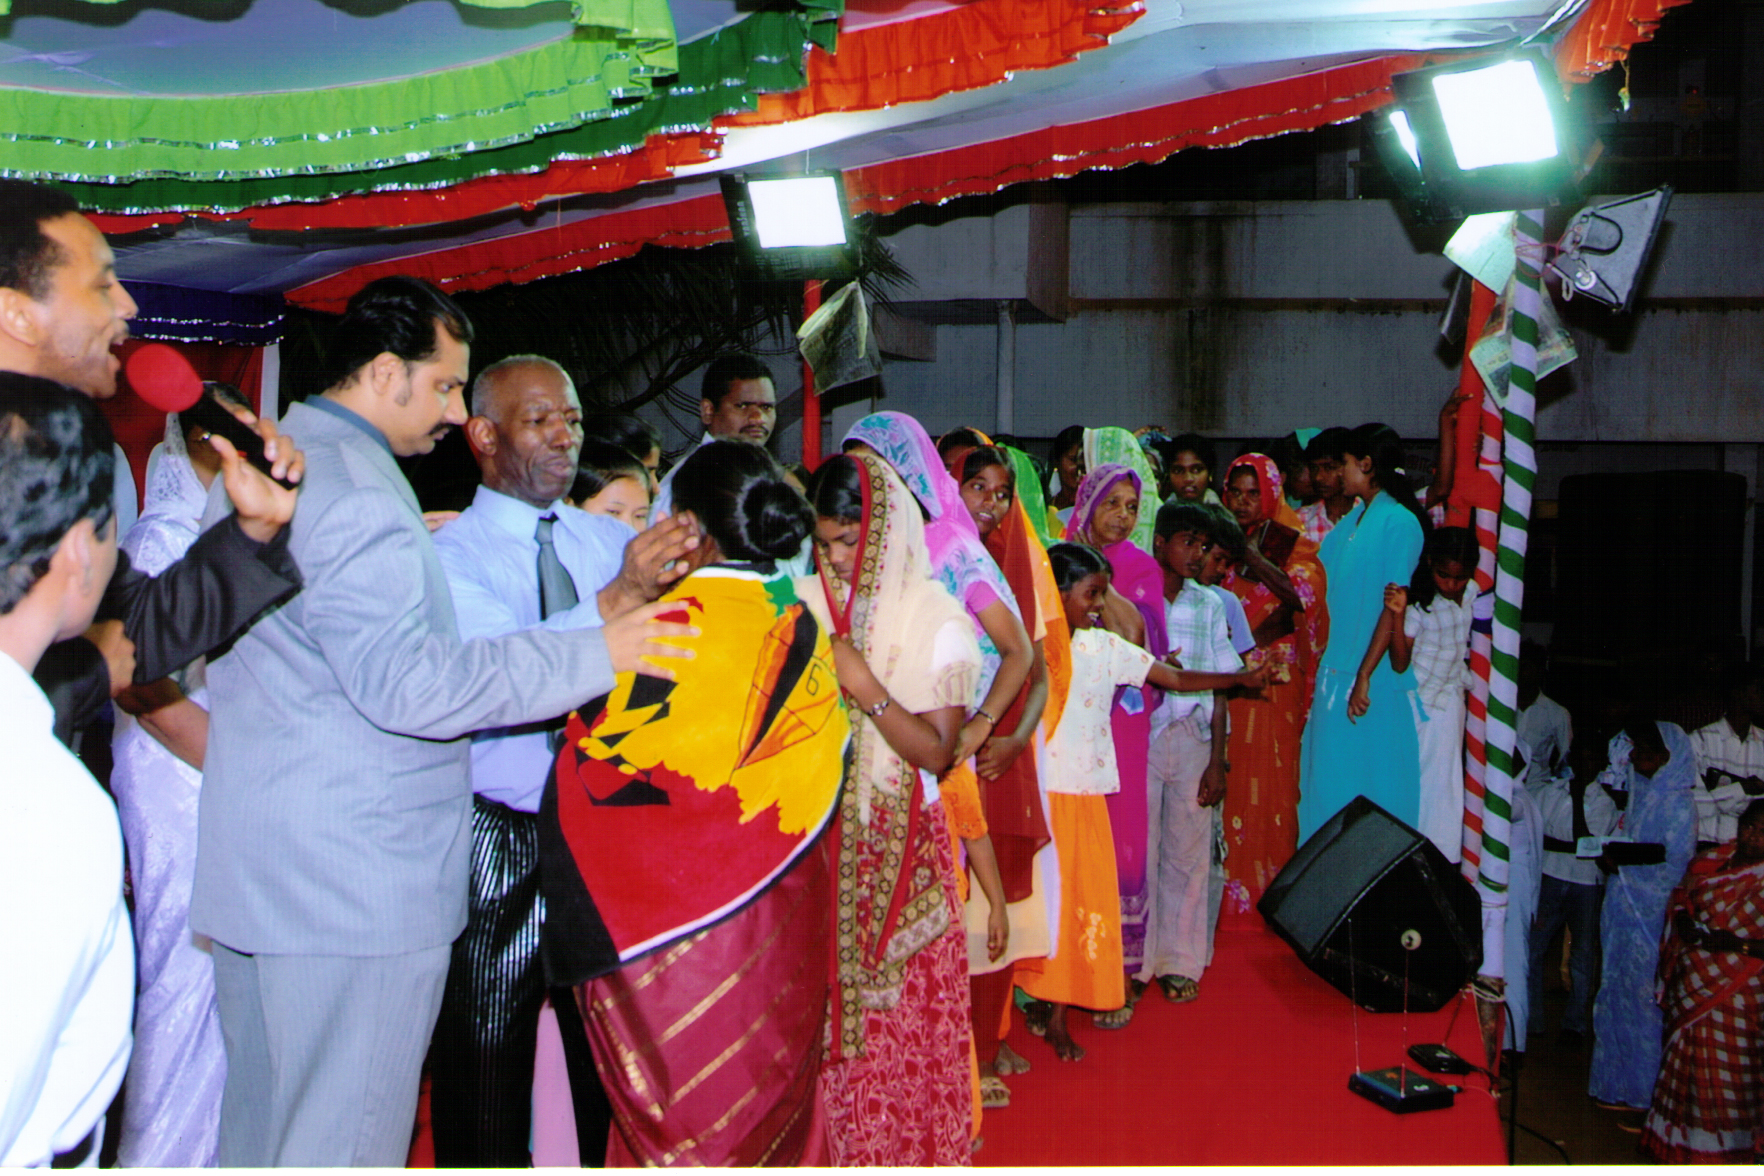 Apostle McFarlane with Bishop Jabez Praying for The Sick during the Mission to India 2008